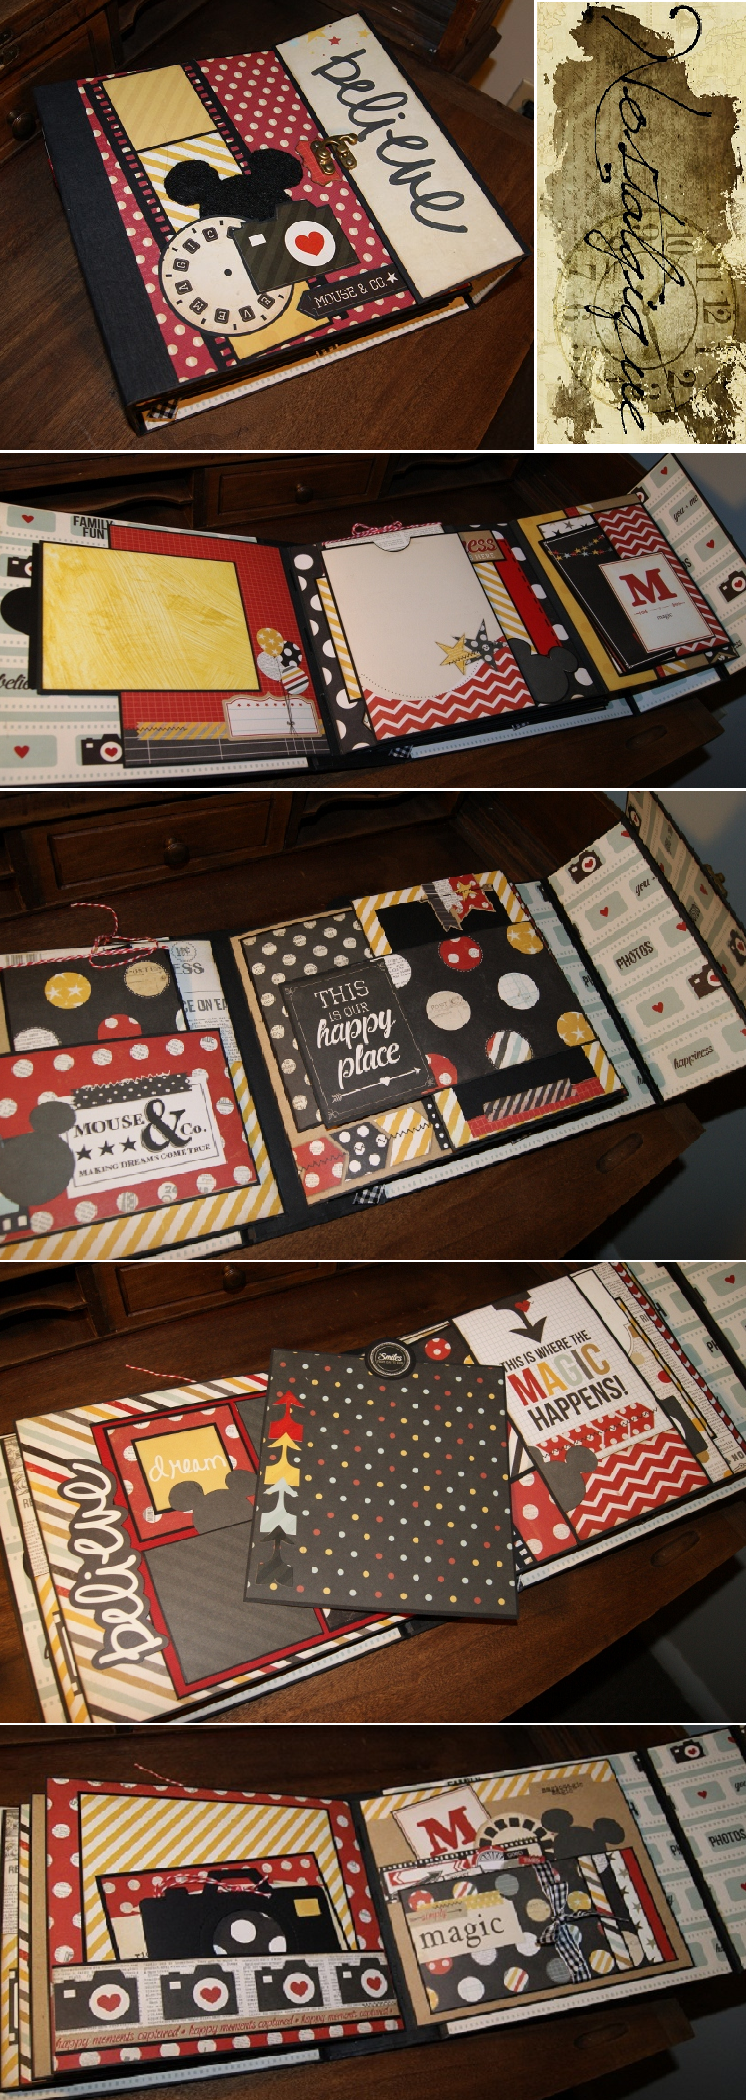 How to make scrapbook using recycled materials - 33 Creative Scrapbook Ideas Every Crafter Should Know Scrapbook Designs Scrapbooking And Design